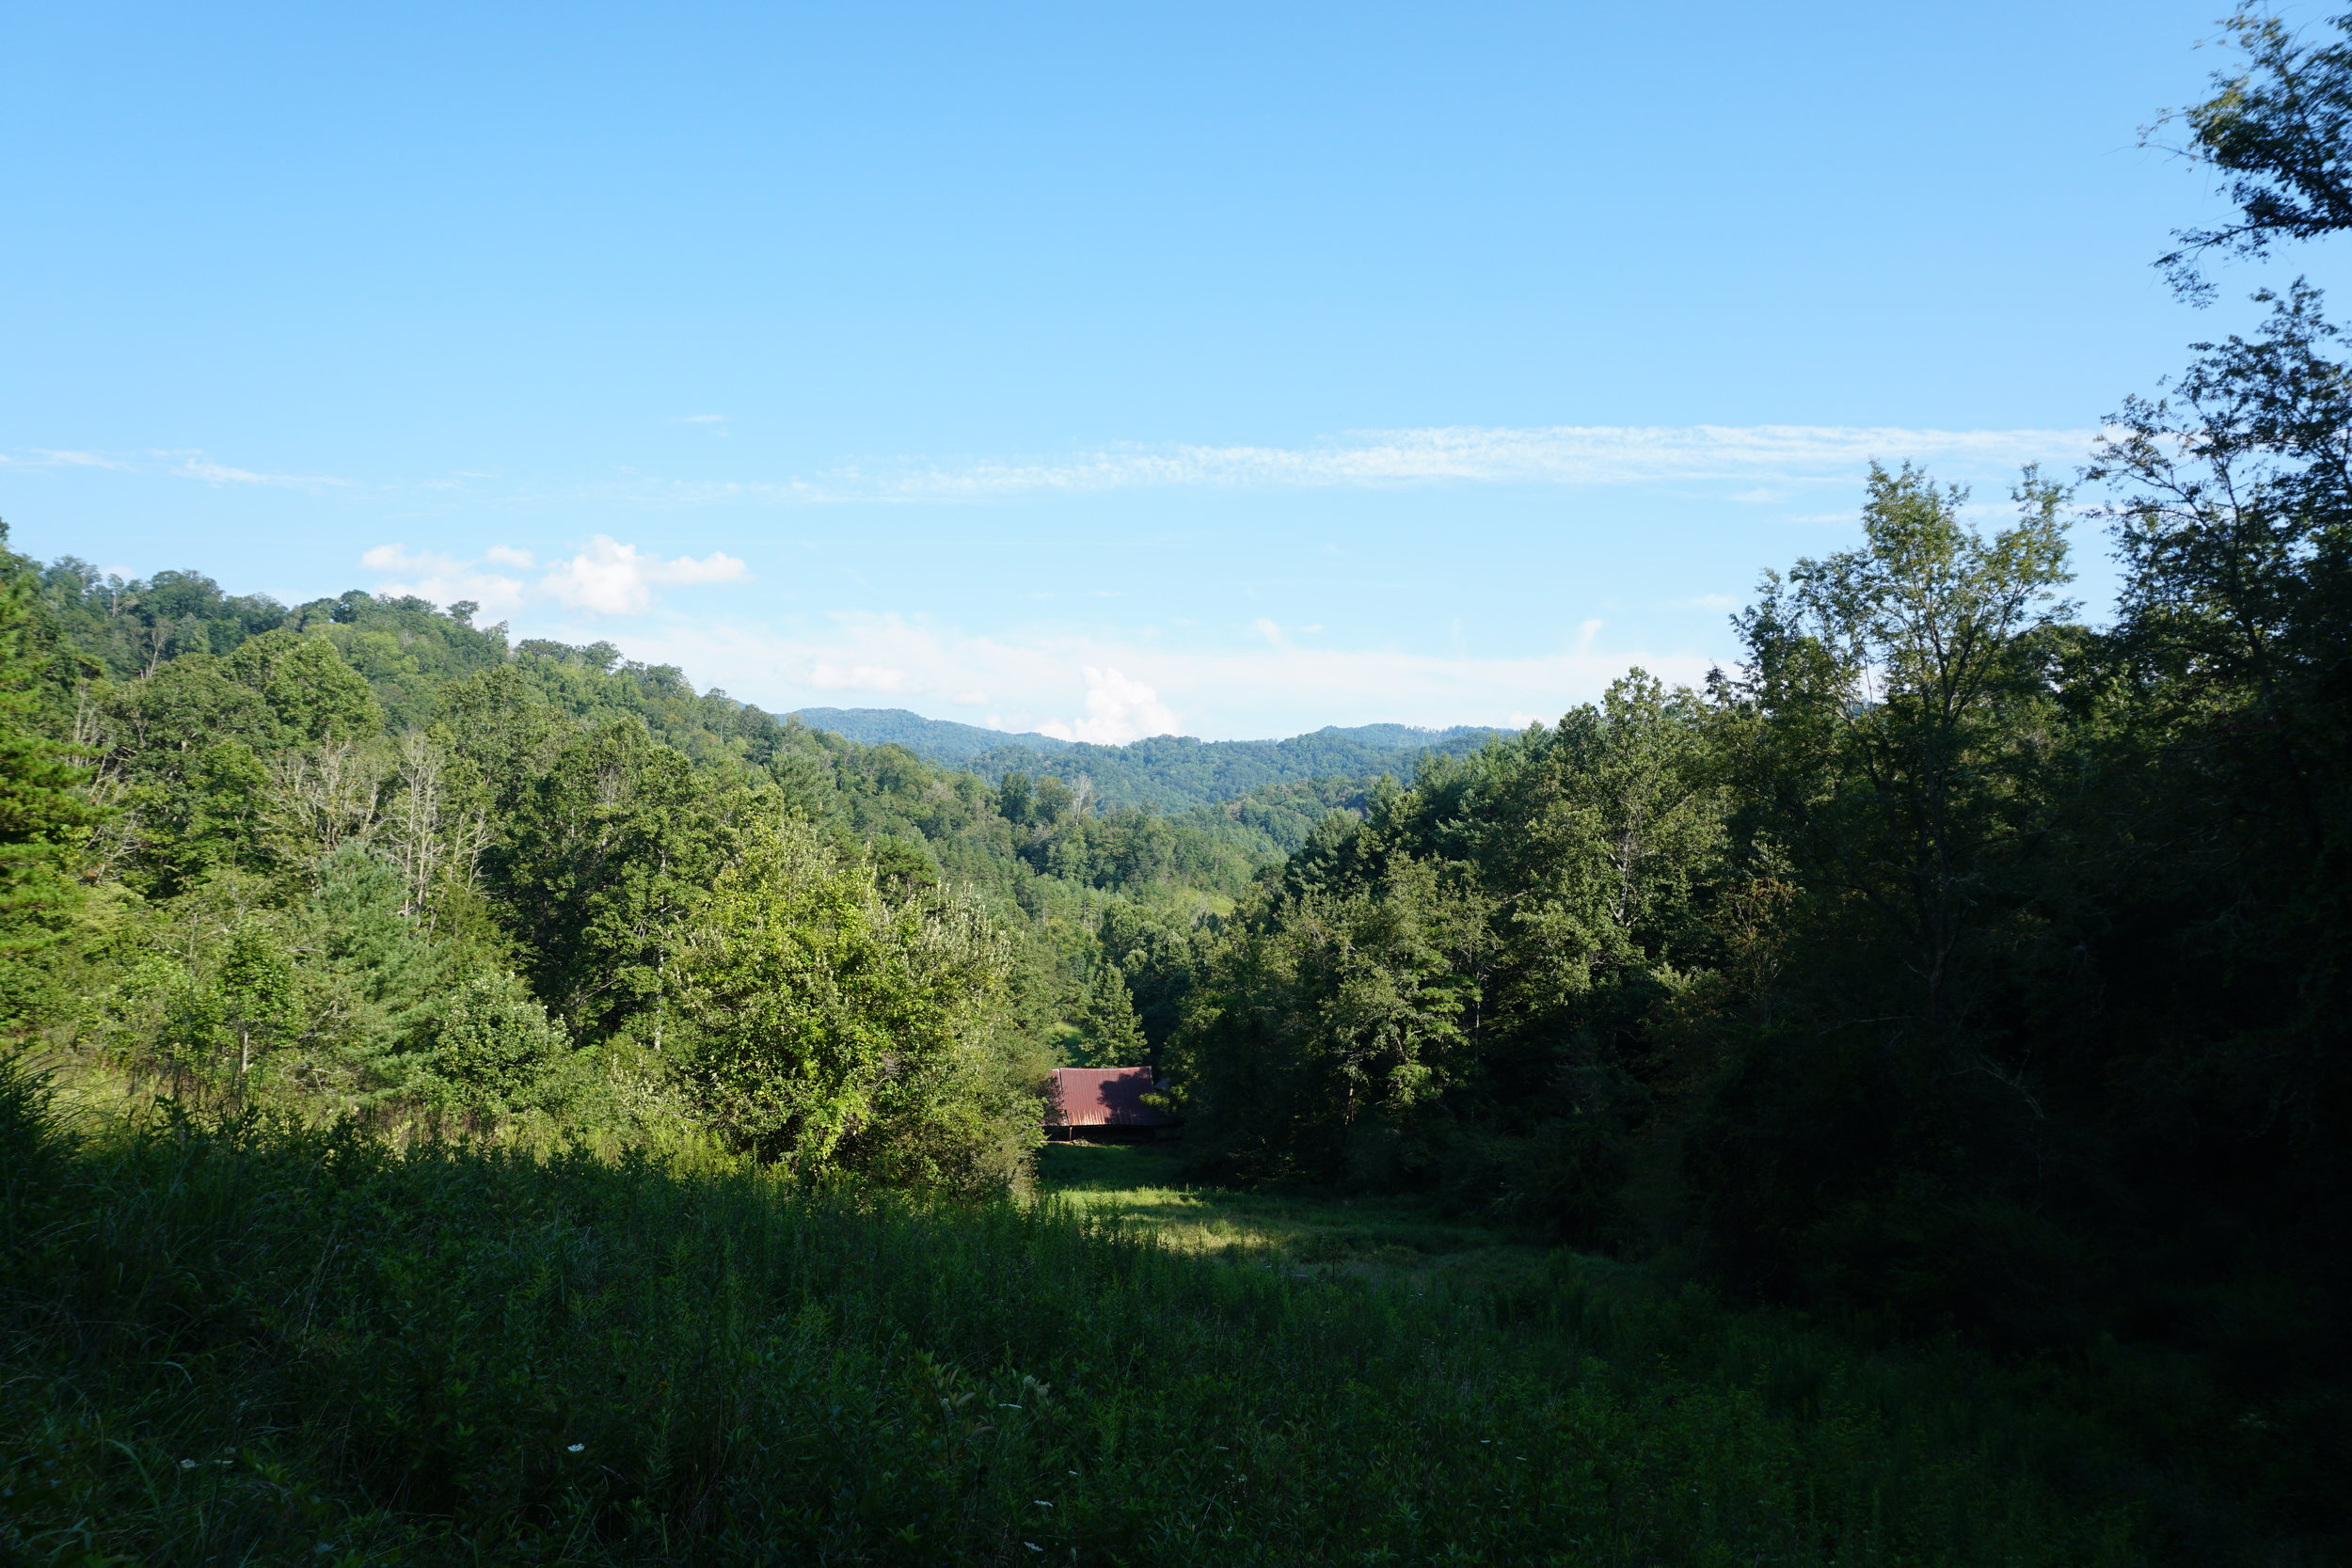 This is at the foot of the mountain, looking back towards the 3rd barn down from the house.